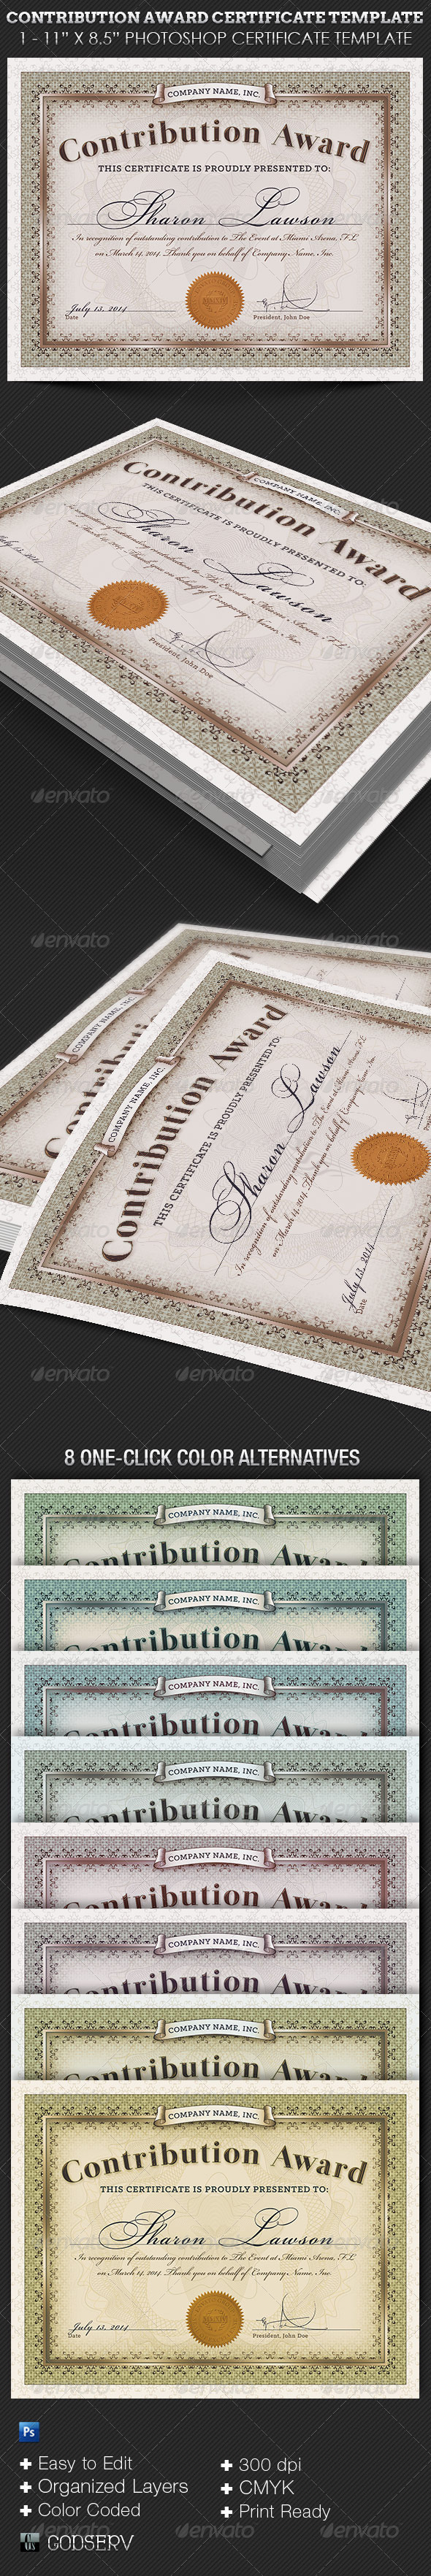 Contribution Award Certificate Template On Behance